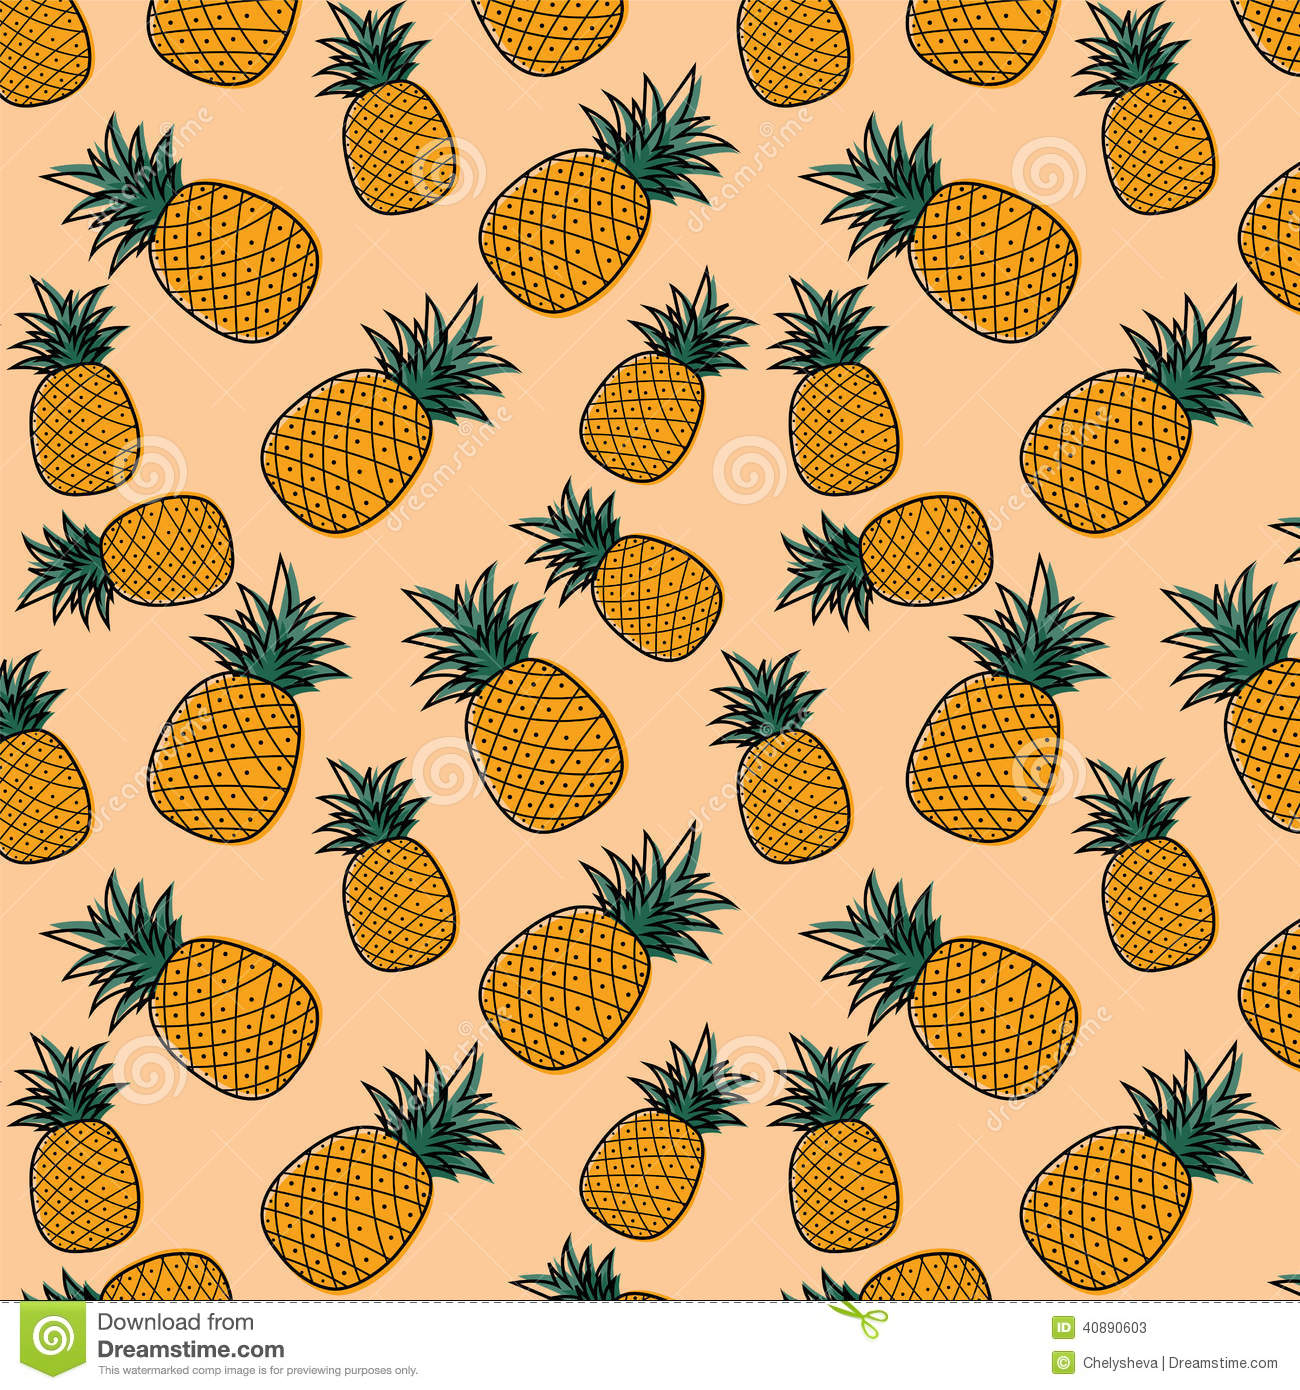 Cute Nutella Wallpapers Pineapple Pattern Stock Vector Illustration Of Pattern